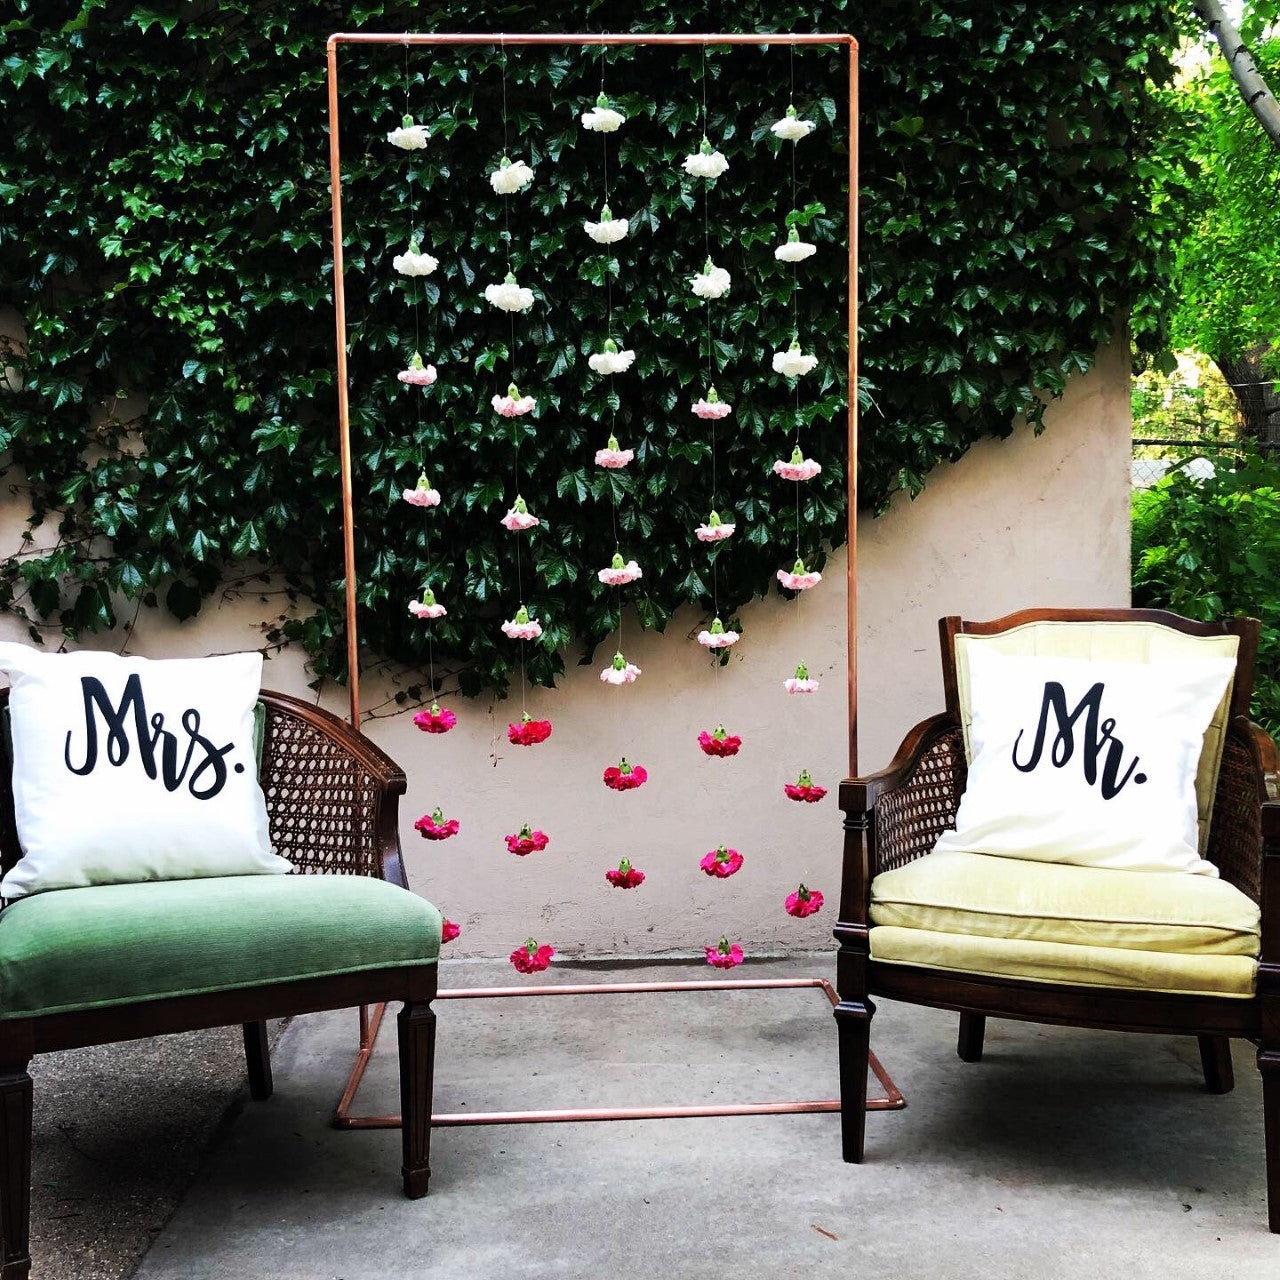 "Pink and white carnation flowers hanging from a 6ft by 3ft copper arch. On the left of the backdrop is a green vintage chair with a white pillow that says ""Mrs."" in black cursive. On the right of the backdrop is a yellow-ish vintage chair with a white pillow that says ""Mr."" in black cursive."